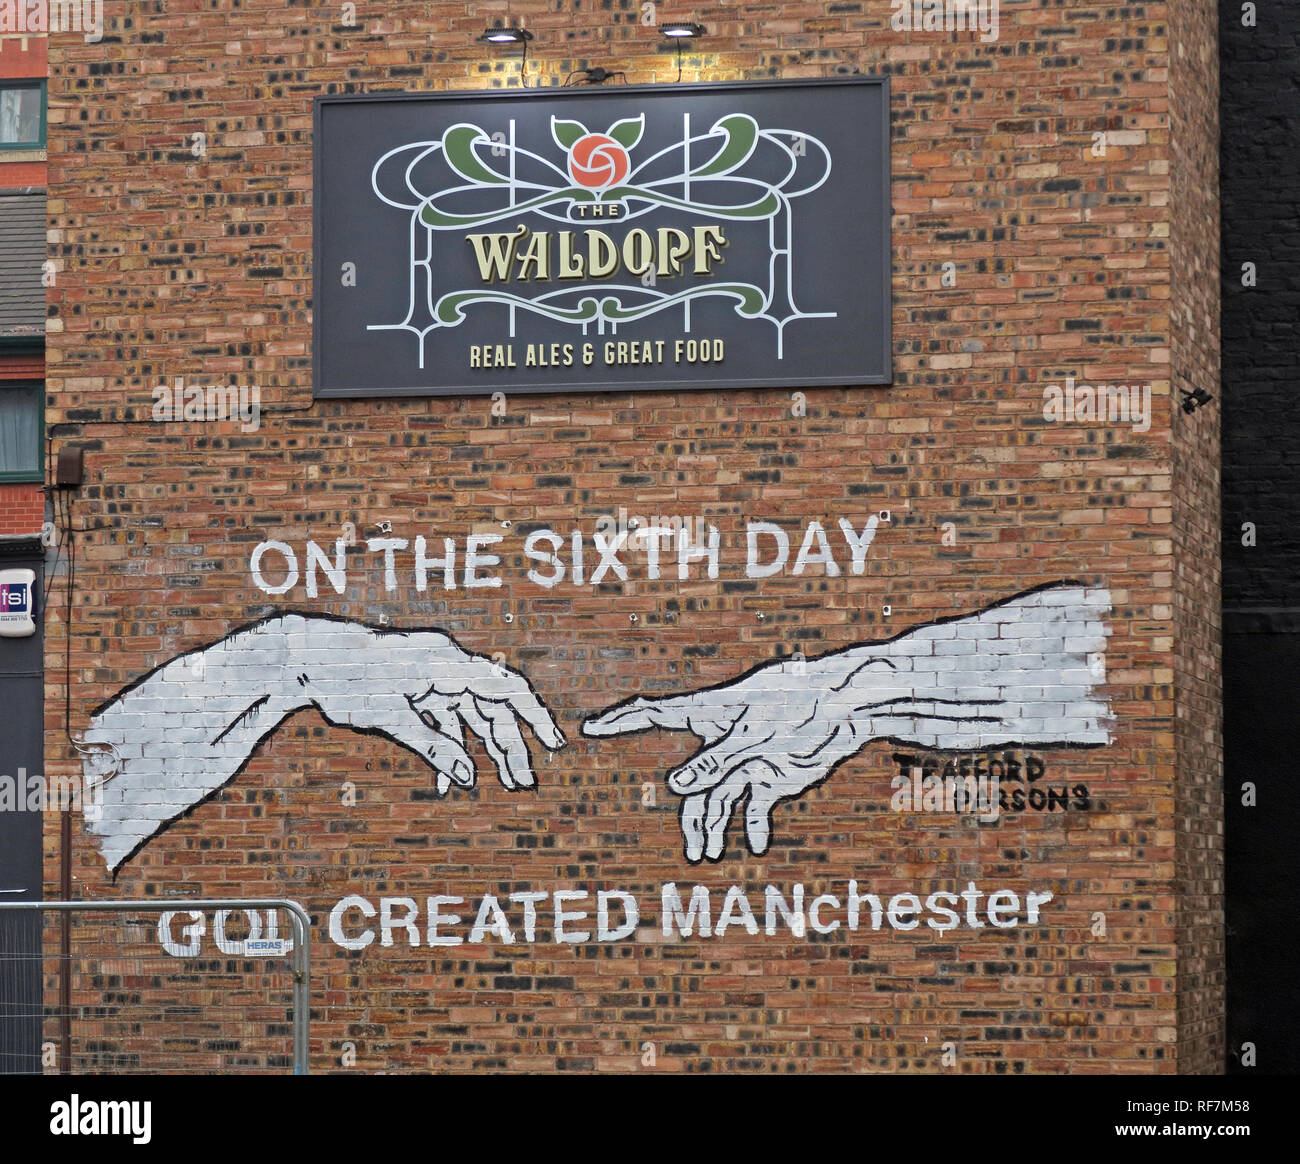 On the 6th Day God Created Manchester, Gable end,The Waldorf Pub Bar, Gore St, Piccadilly, Northern Quarter, Manchester, UK, M1 3AQ - Stock Image